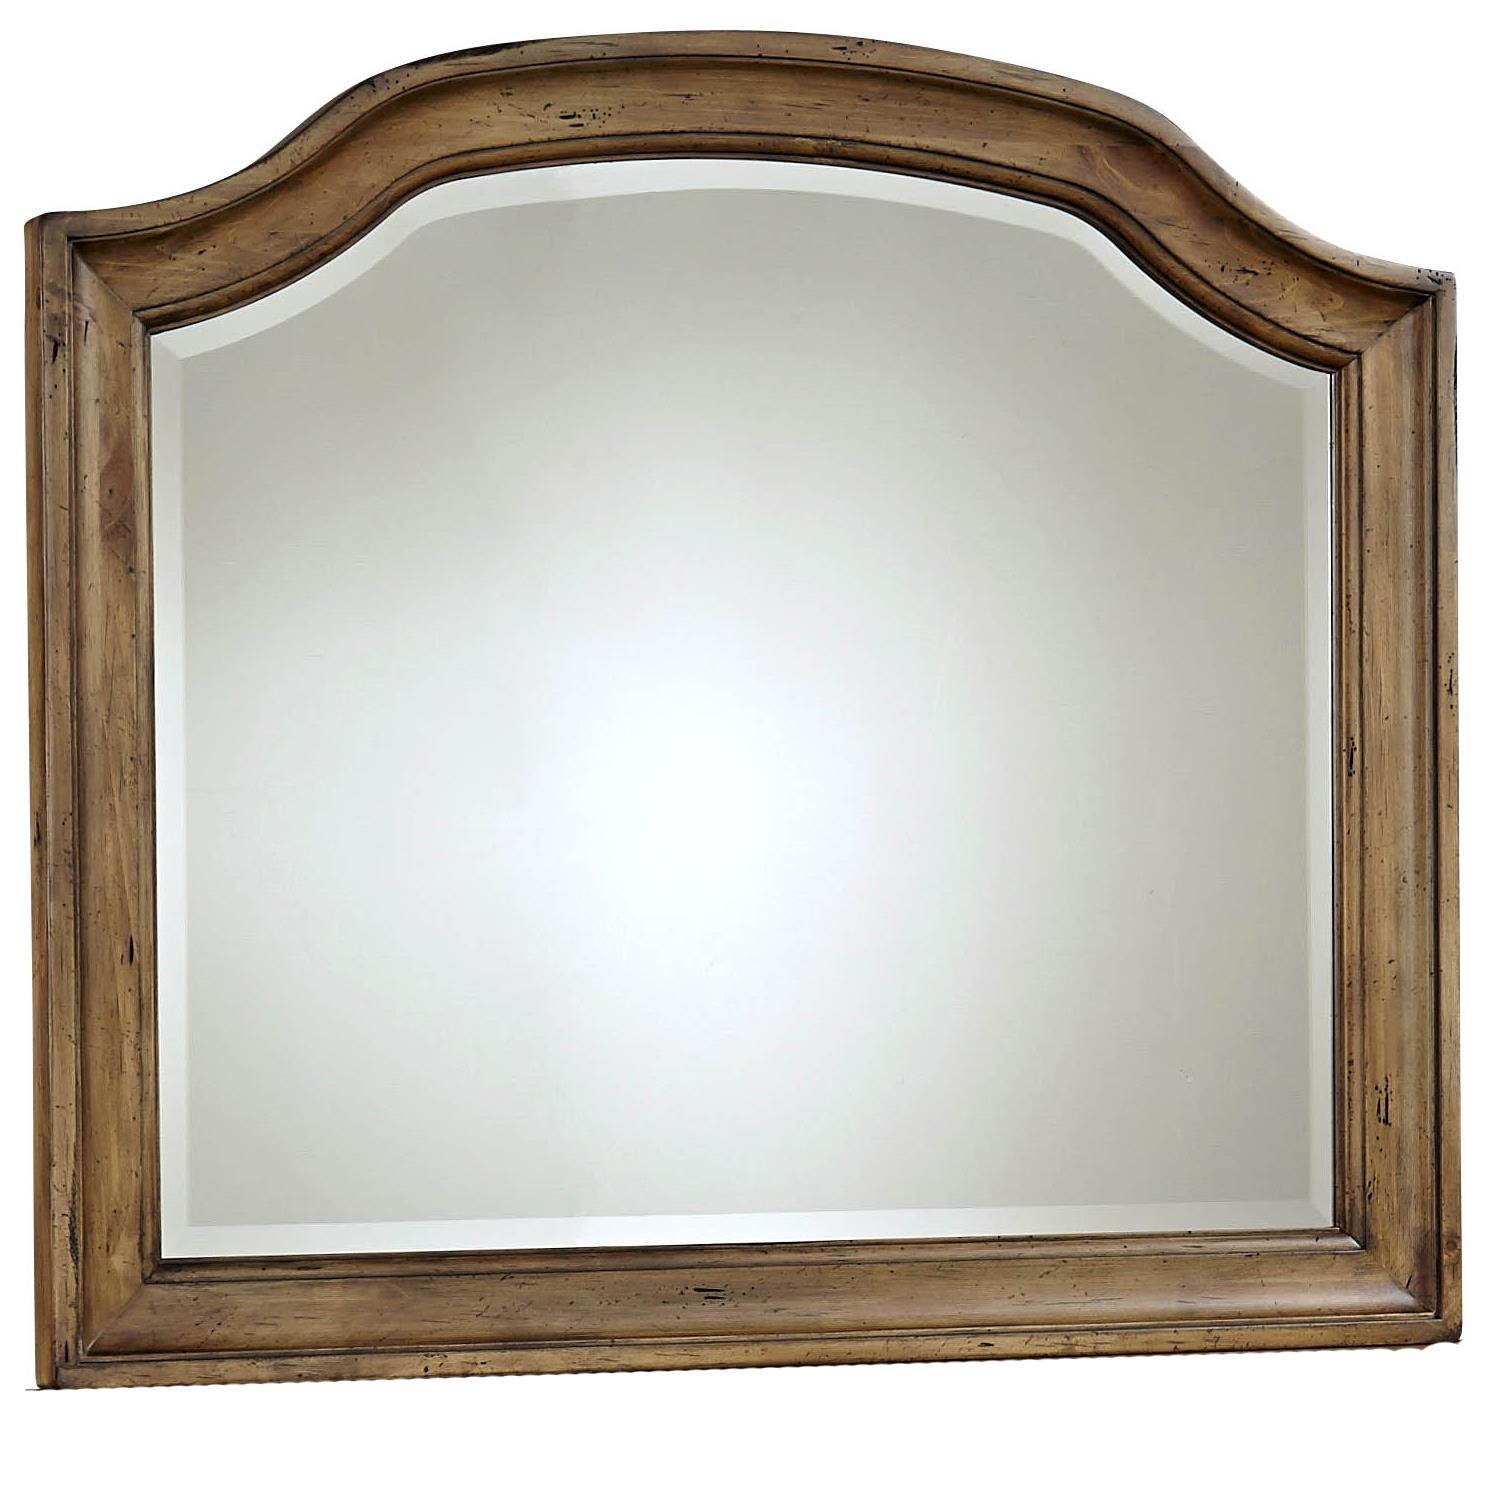 Broyhill Furniture Bethany Square Cove Dresser Mirror - Item Number: 4930-237